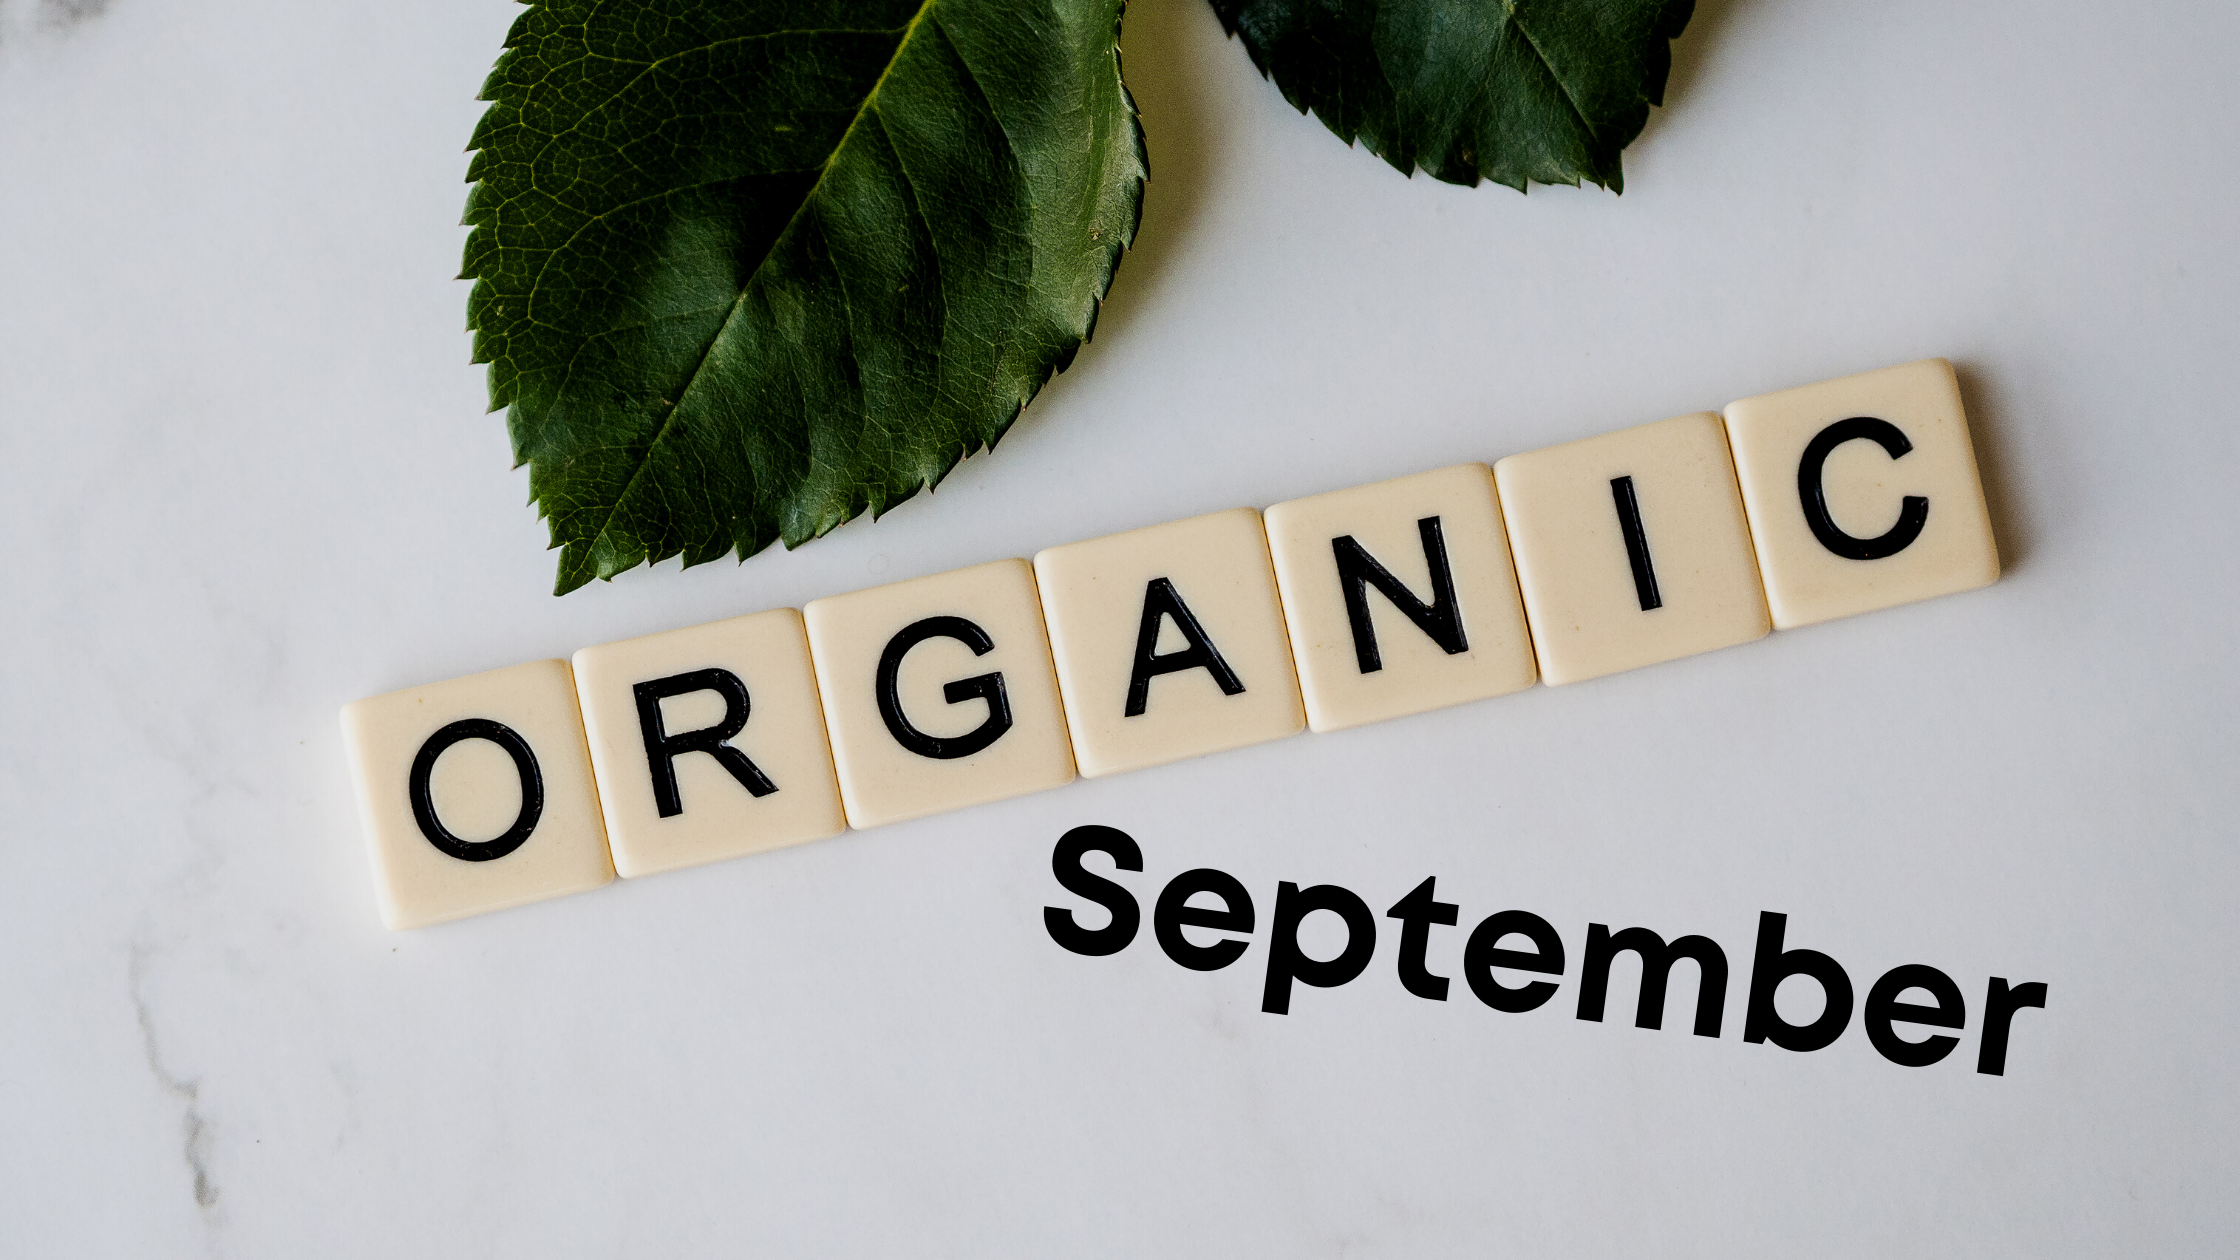 Why go Organic this September?